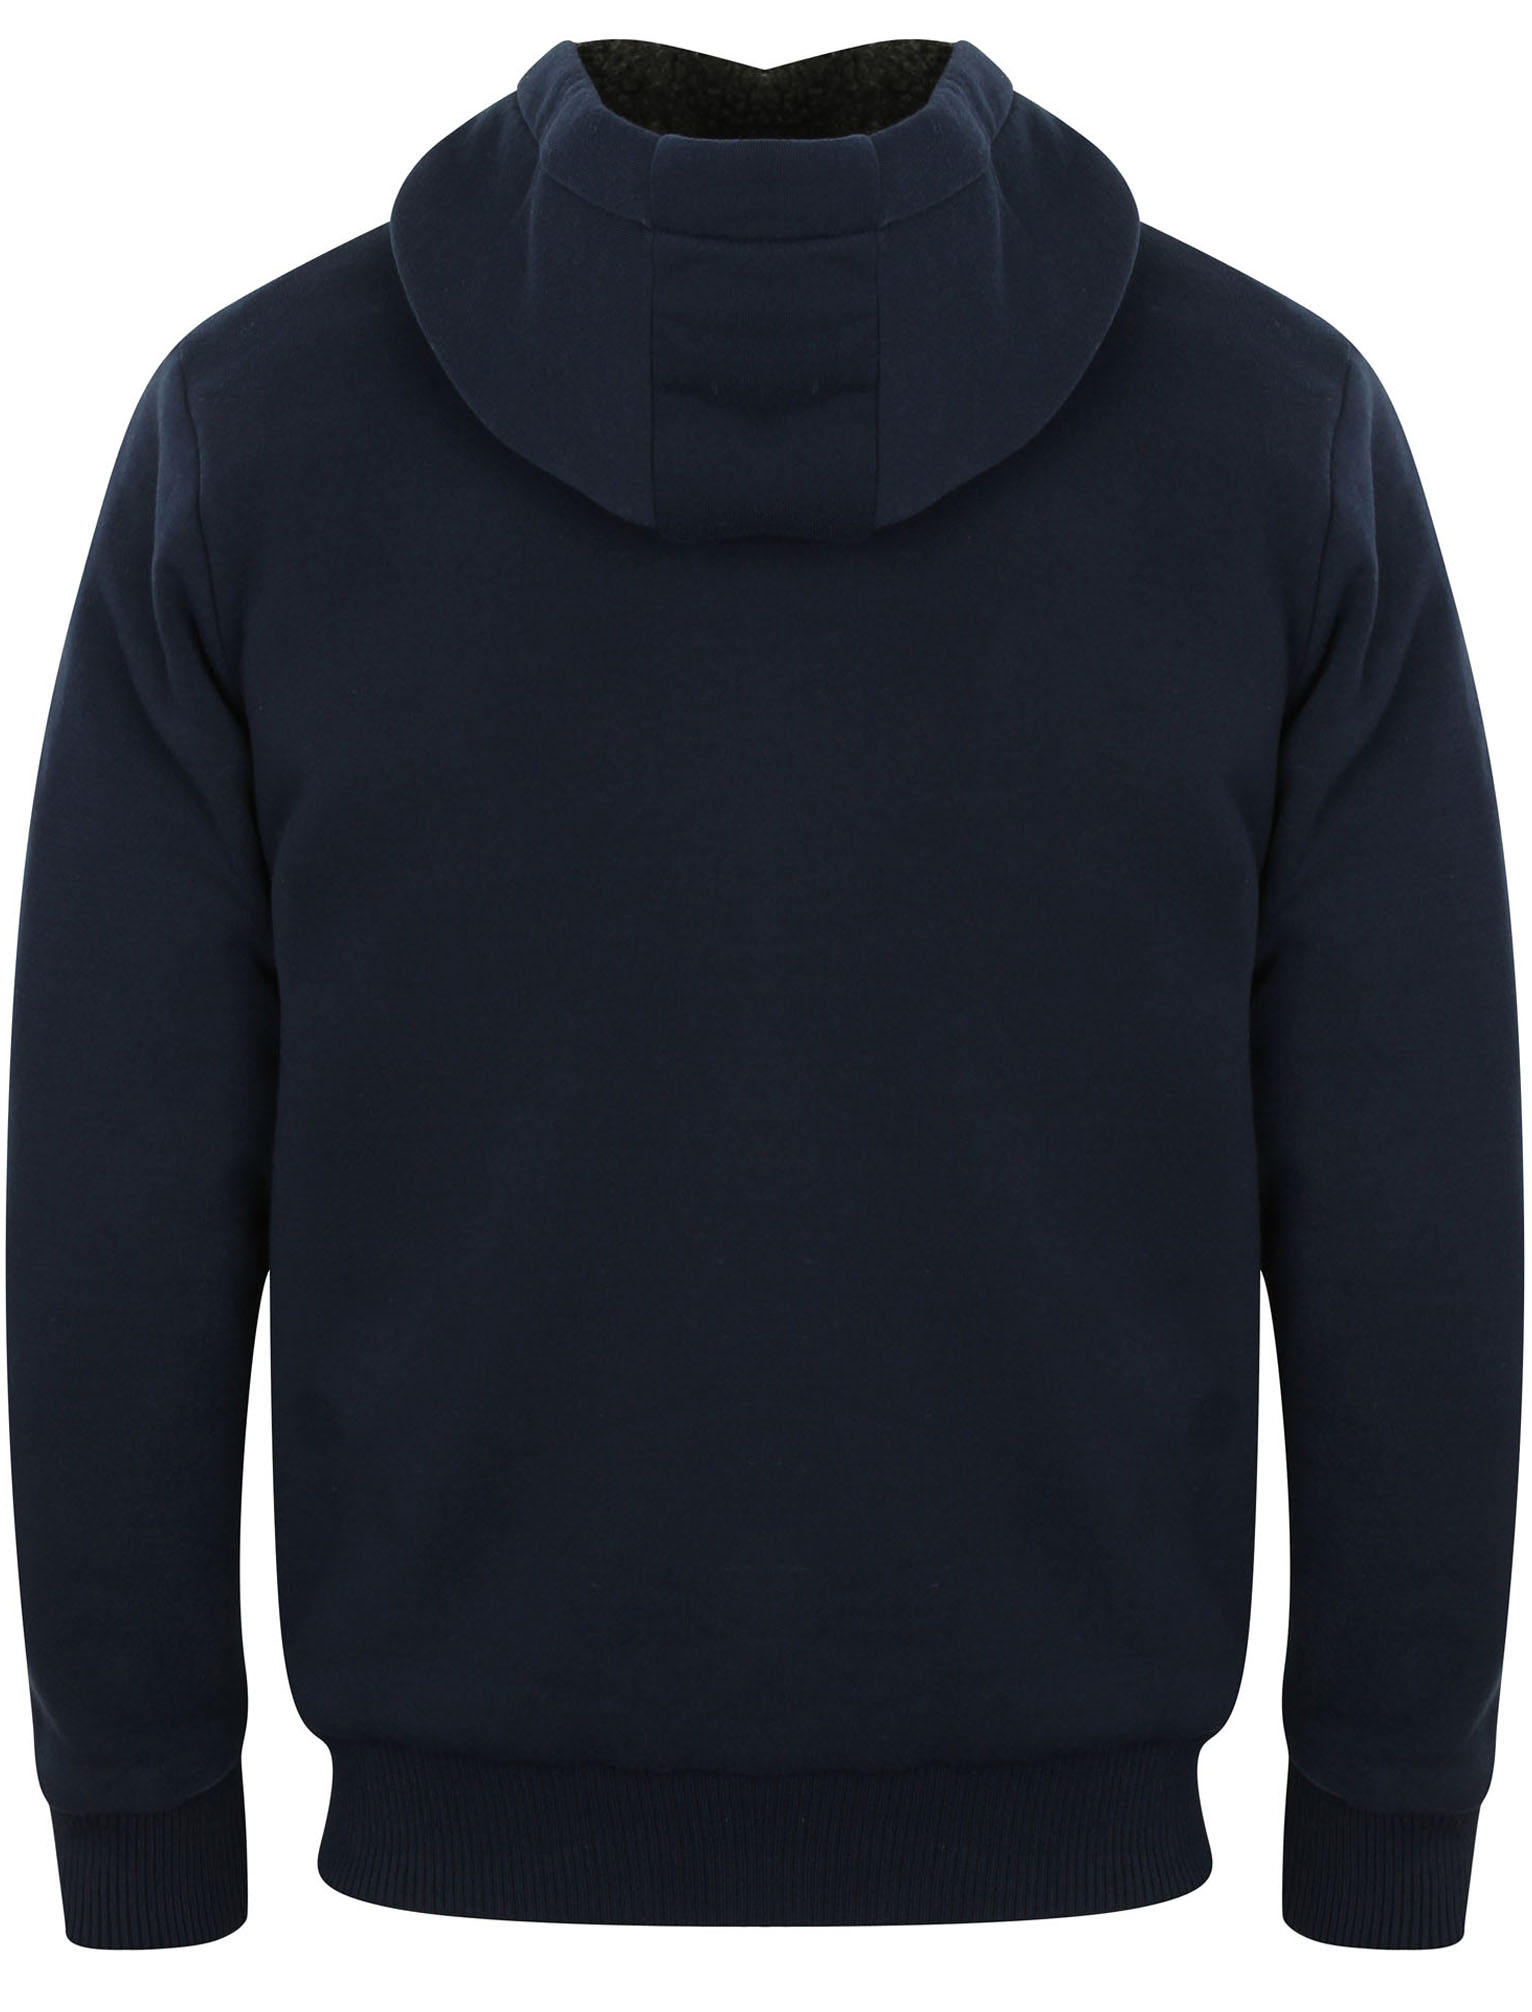 Sherpa lined hoodies for men